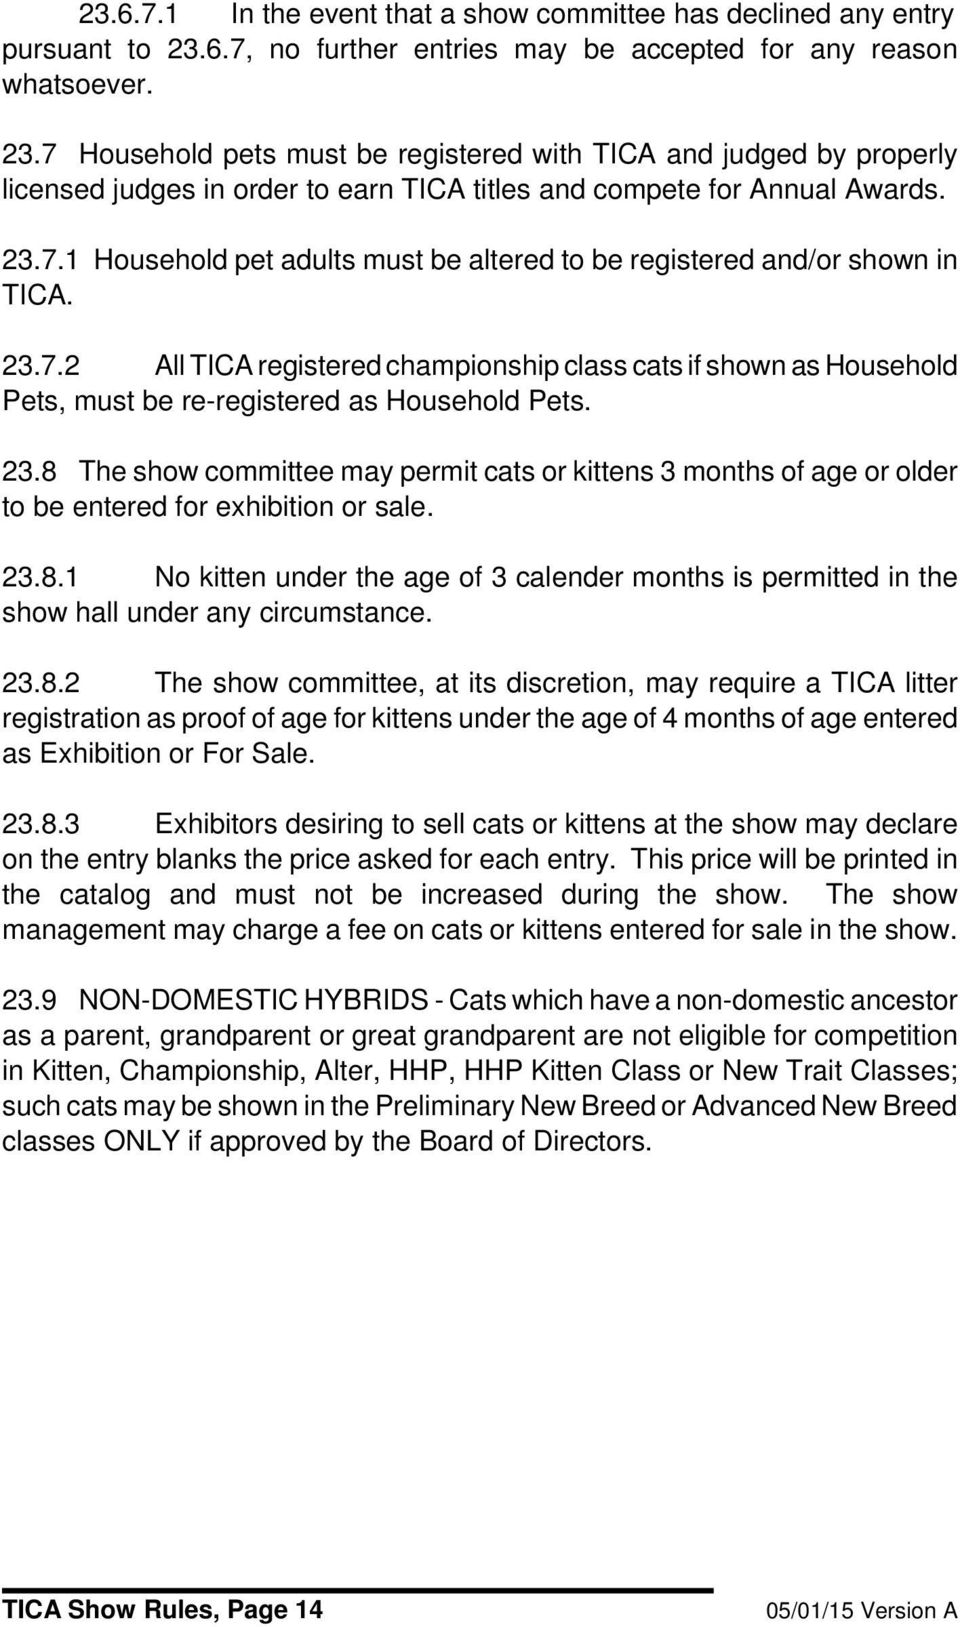 7 Household pets must be registered with TICA and judged by properly licensed judges in order to earn TICA titles and compete for Annual Awards. 23.7.1 Household pet adults must be altered to be registered and/or shown in TICA.